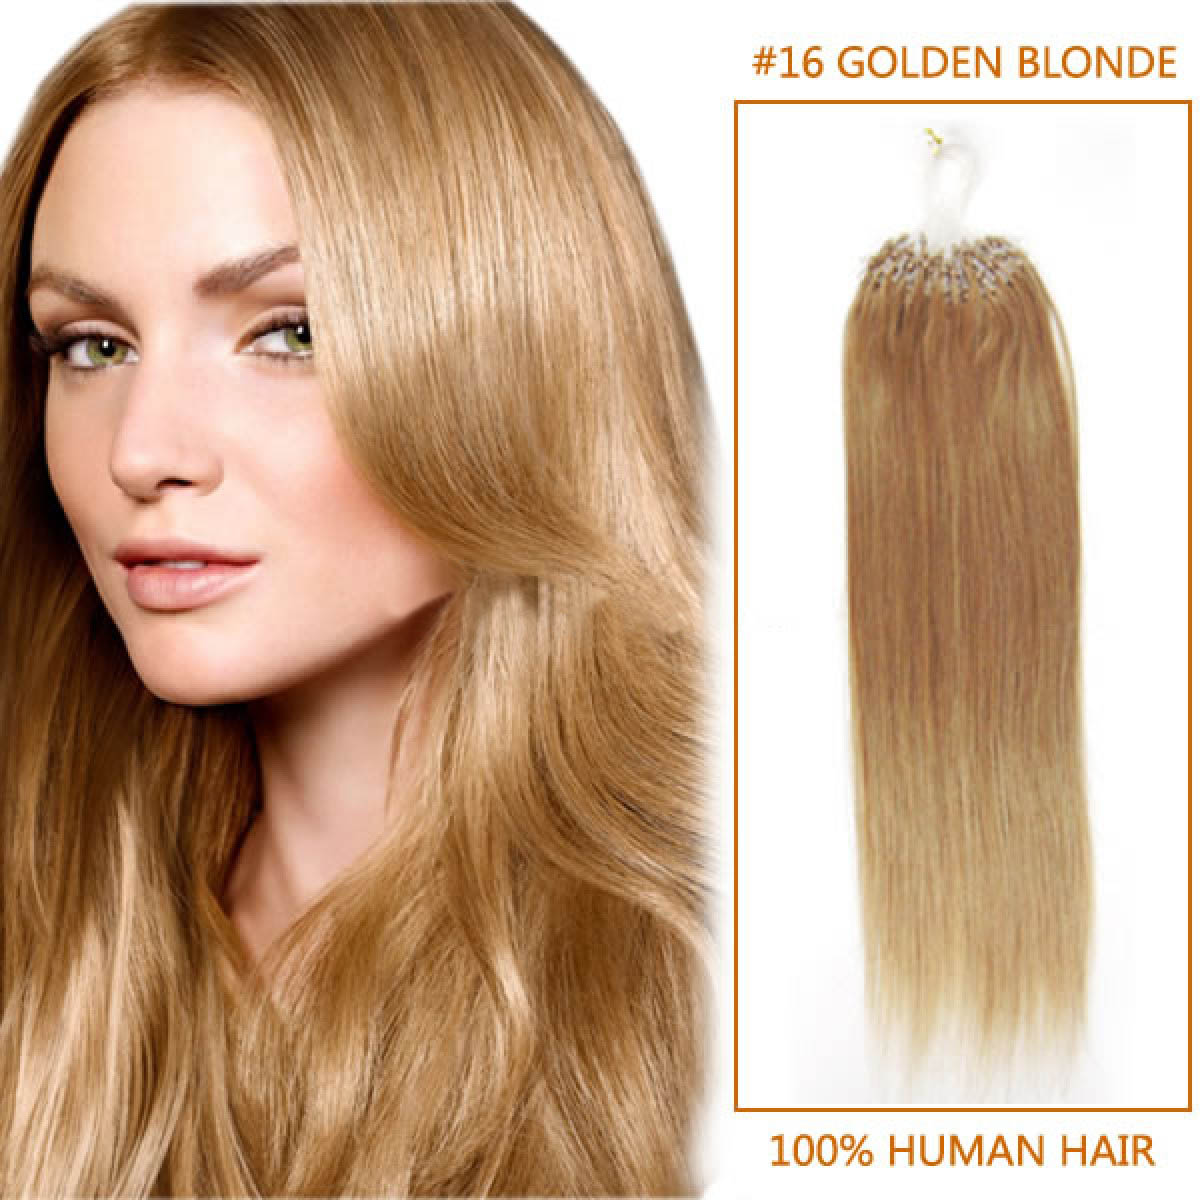 18 Inch 16 Golden Blonde Micro Loop Human Hair Extensions 100s 100g